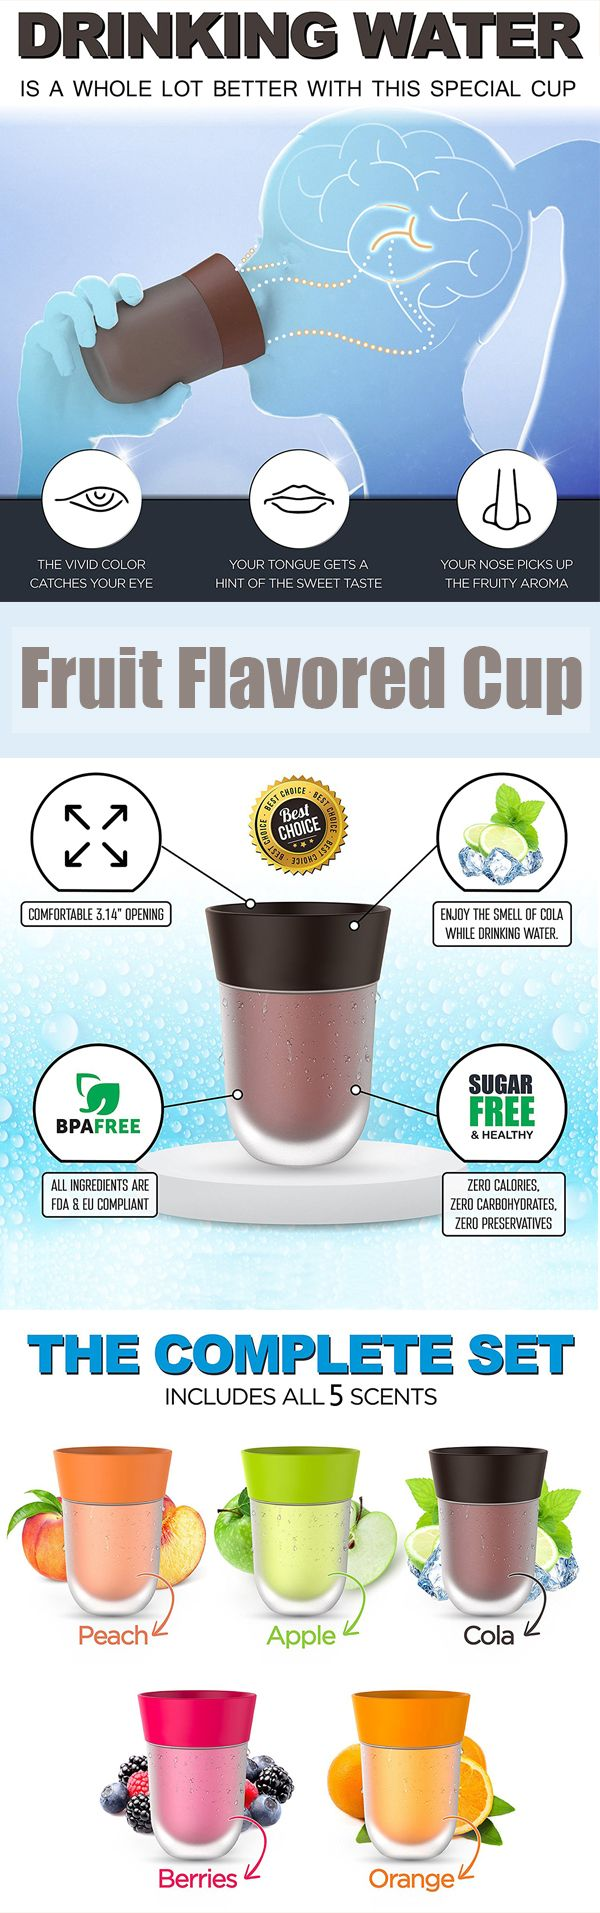 US$8.85 Fruit Flavored Cup Drink Water Like What You Smell Cup#newchic#chiristmasgift#cup